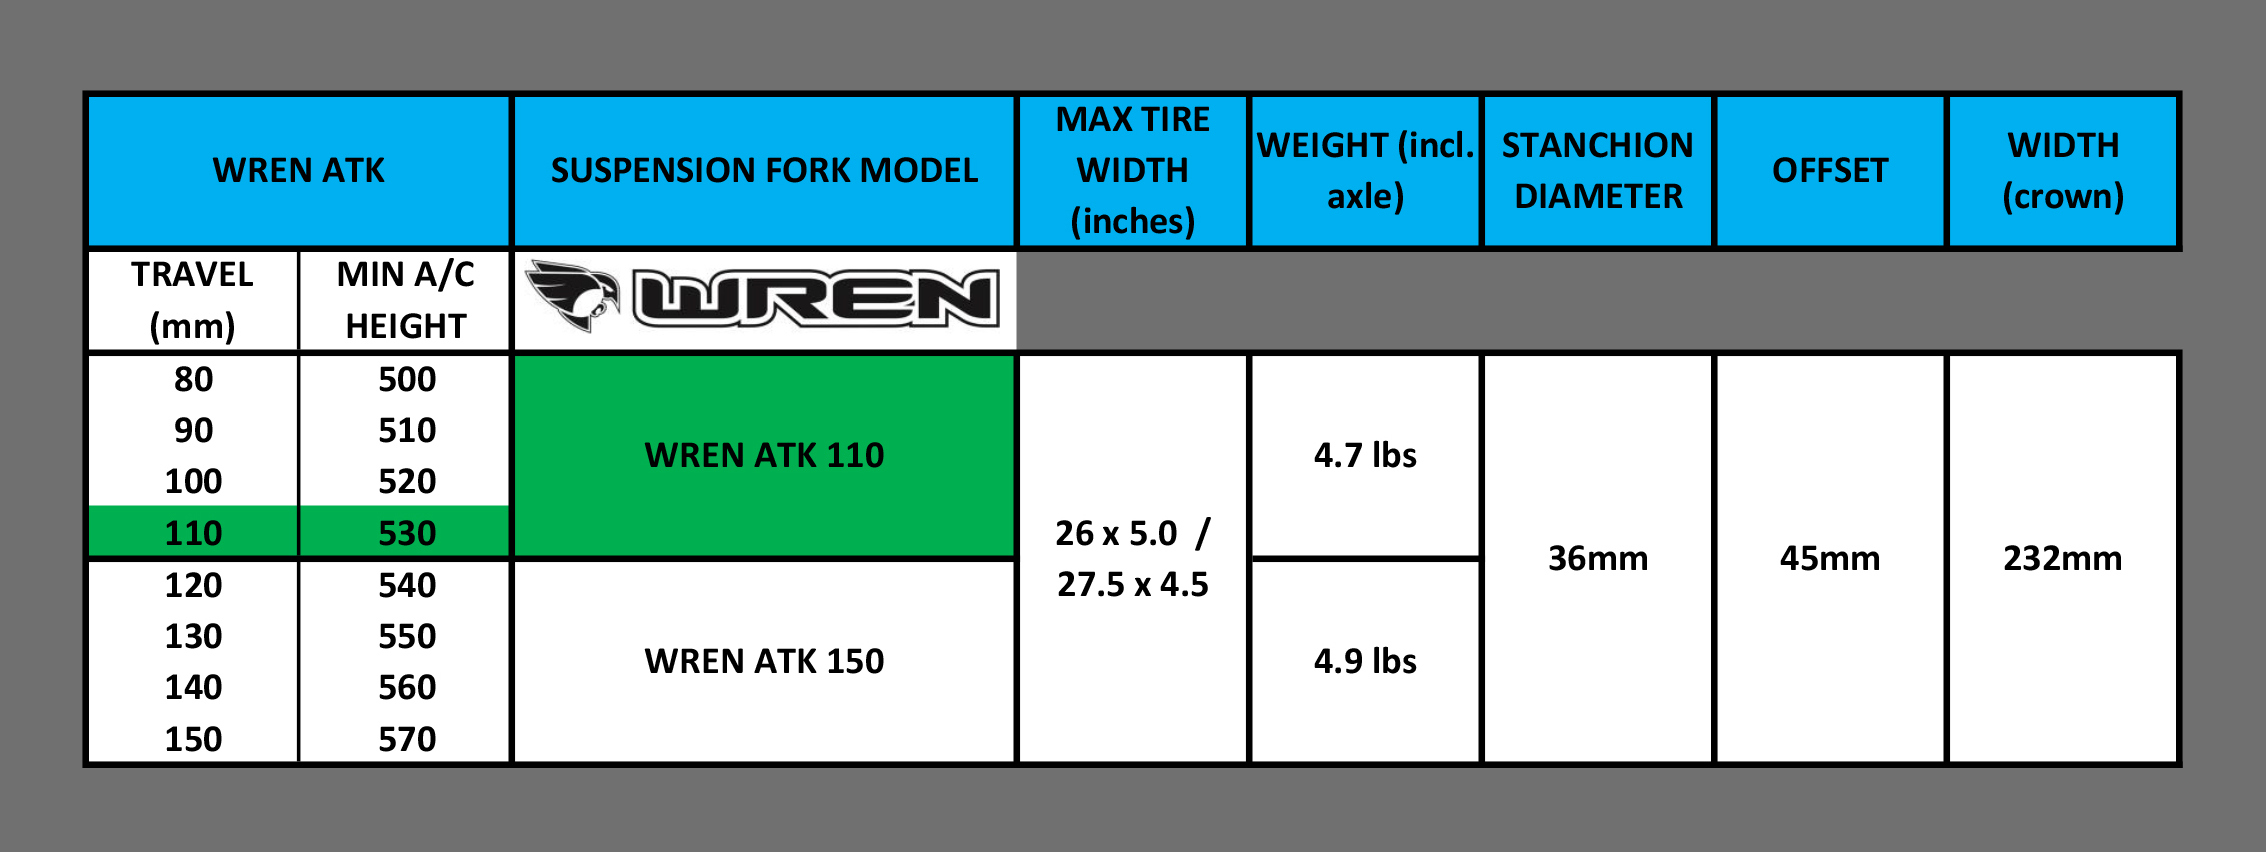 WREN ATK PHYSICAL SPECIFICATIONS and TIRE COMPATIBILITY